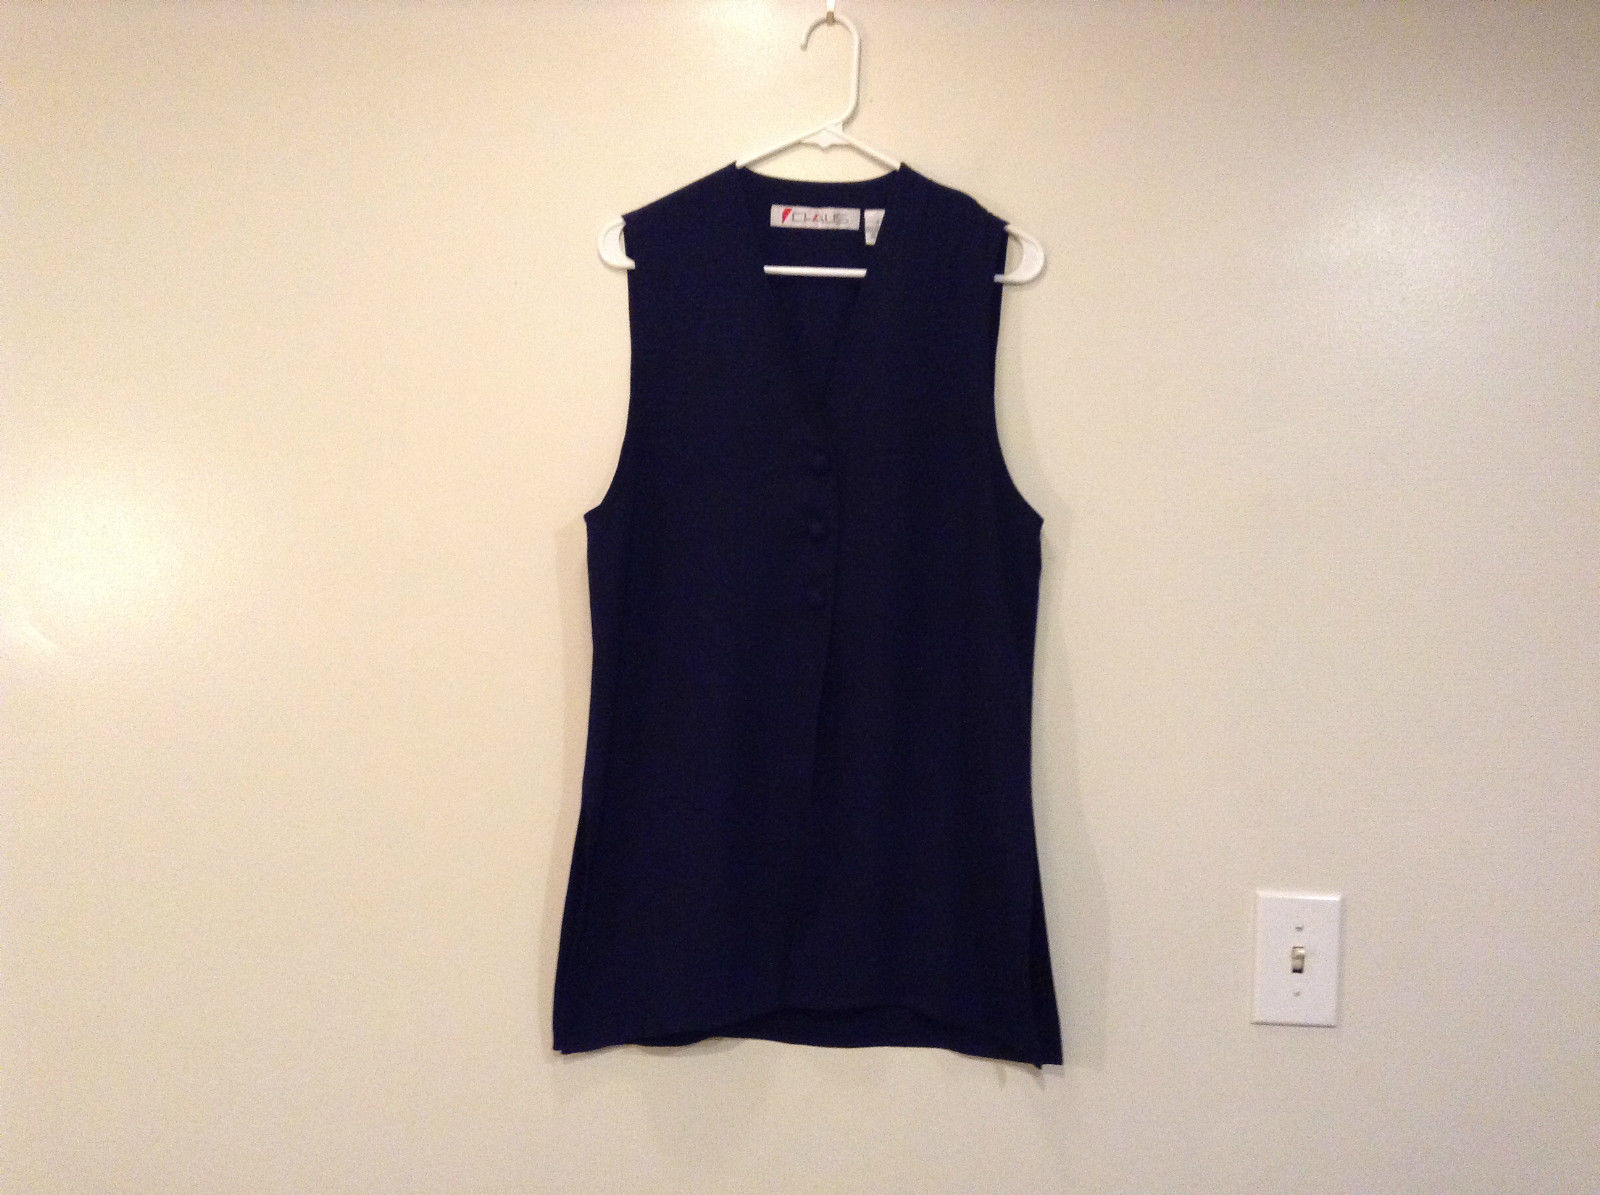 Claus Sleeveless Top or Vest Navy Blue 3 Front Buttons V Neck Fully Lined Size S